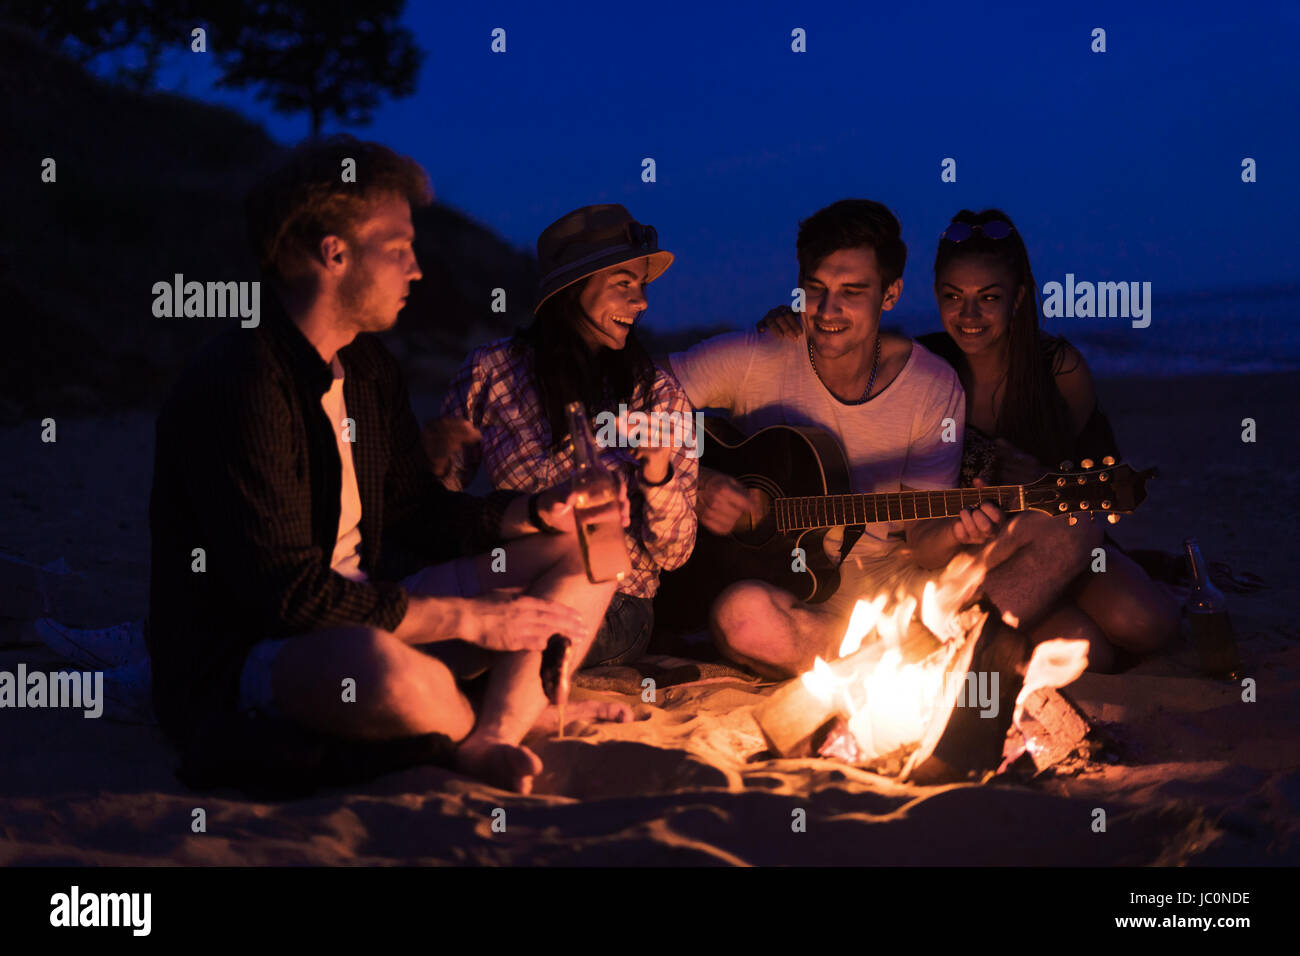 friends sitting on the beach. man is playing guitar. - Stock Image